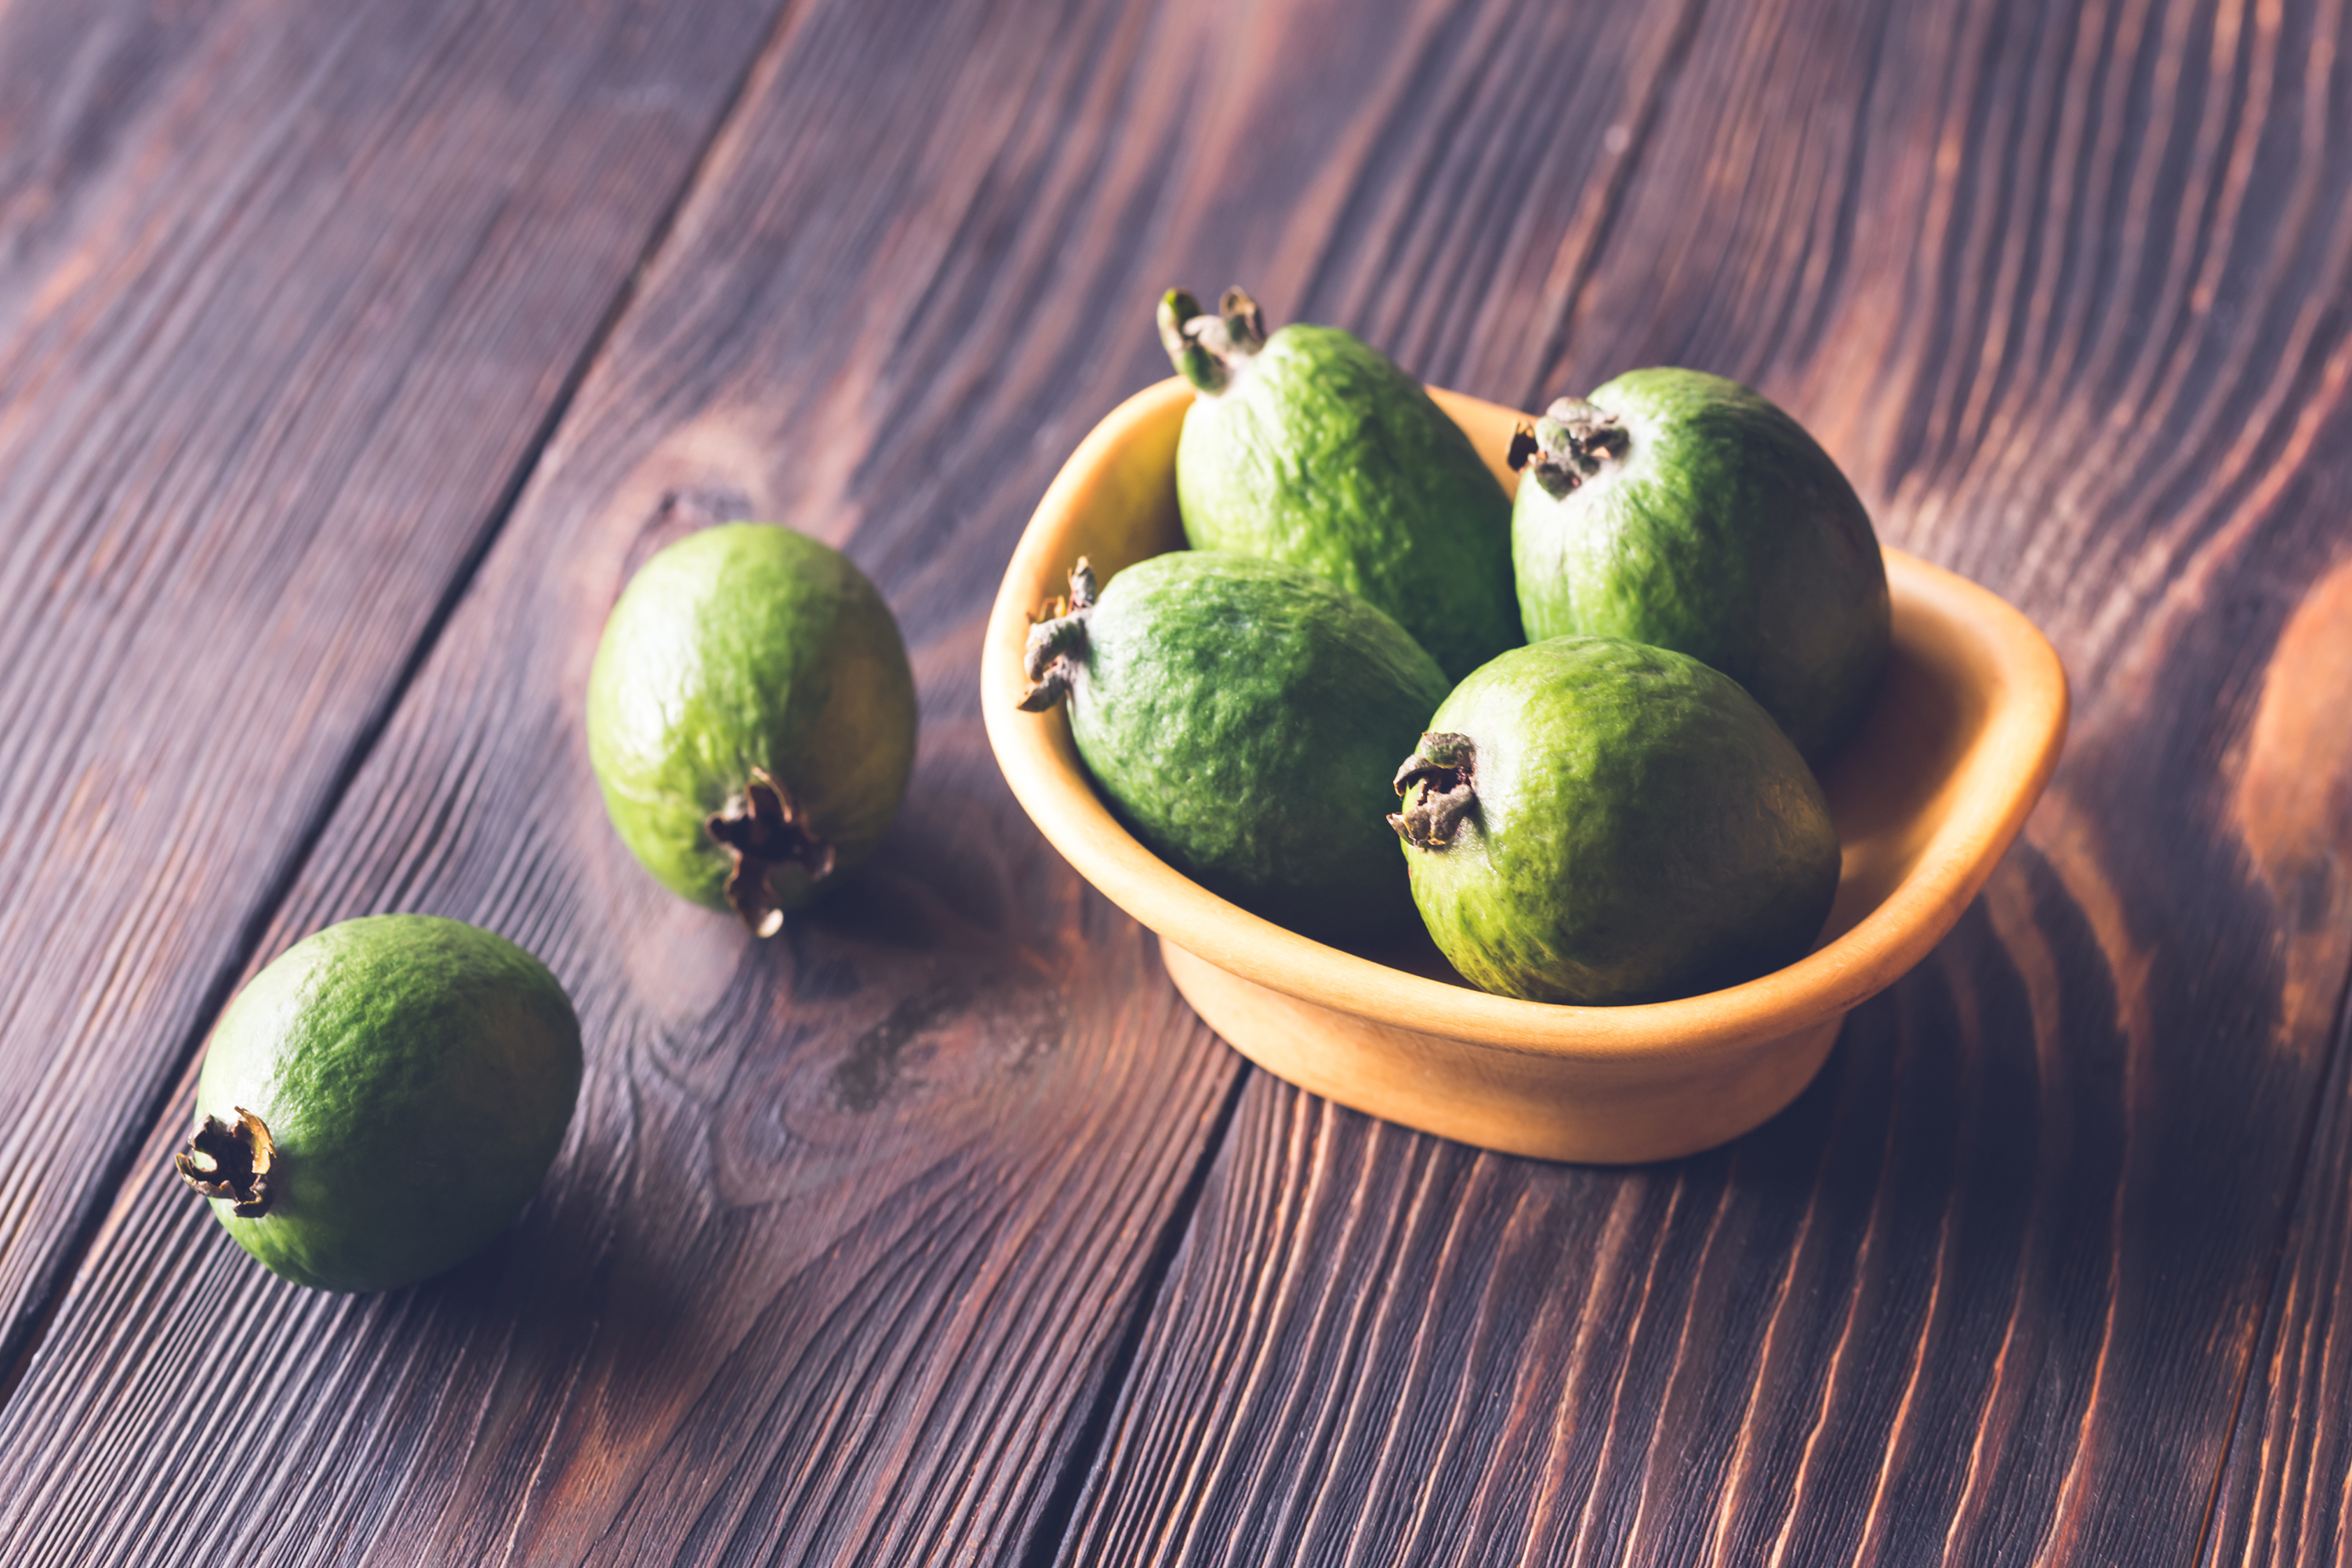 Bowl of feijoa fruits example image 1